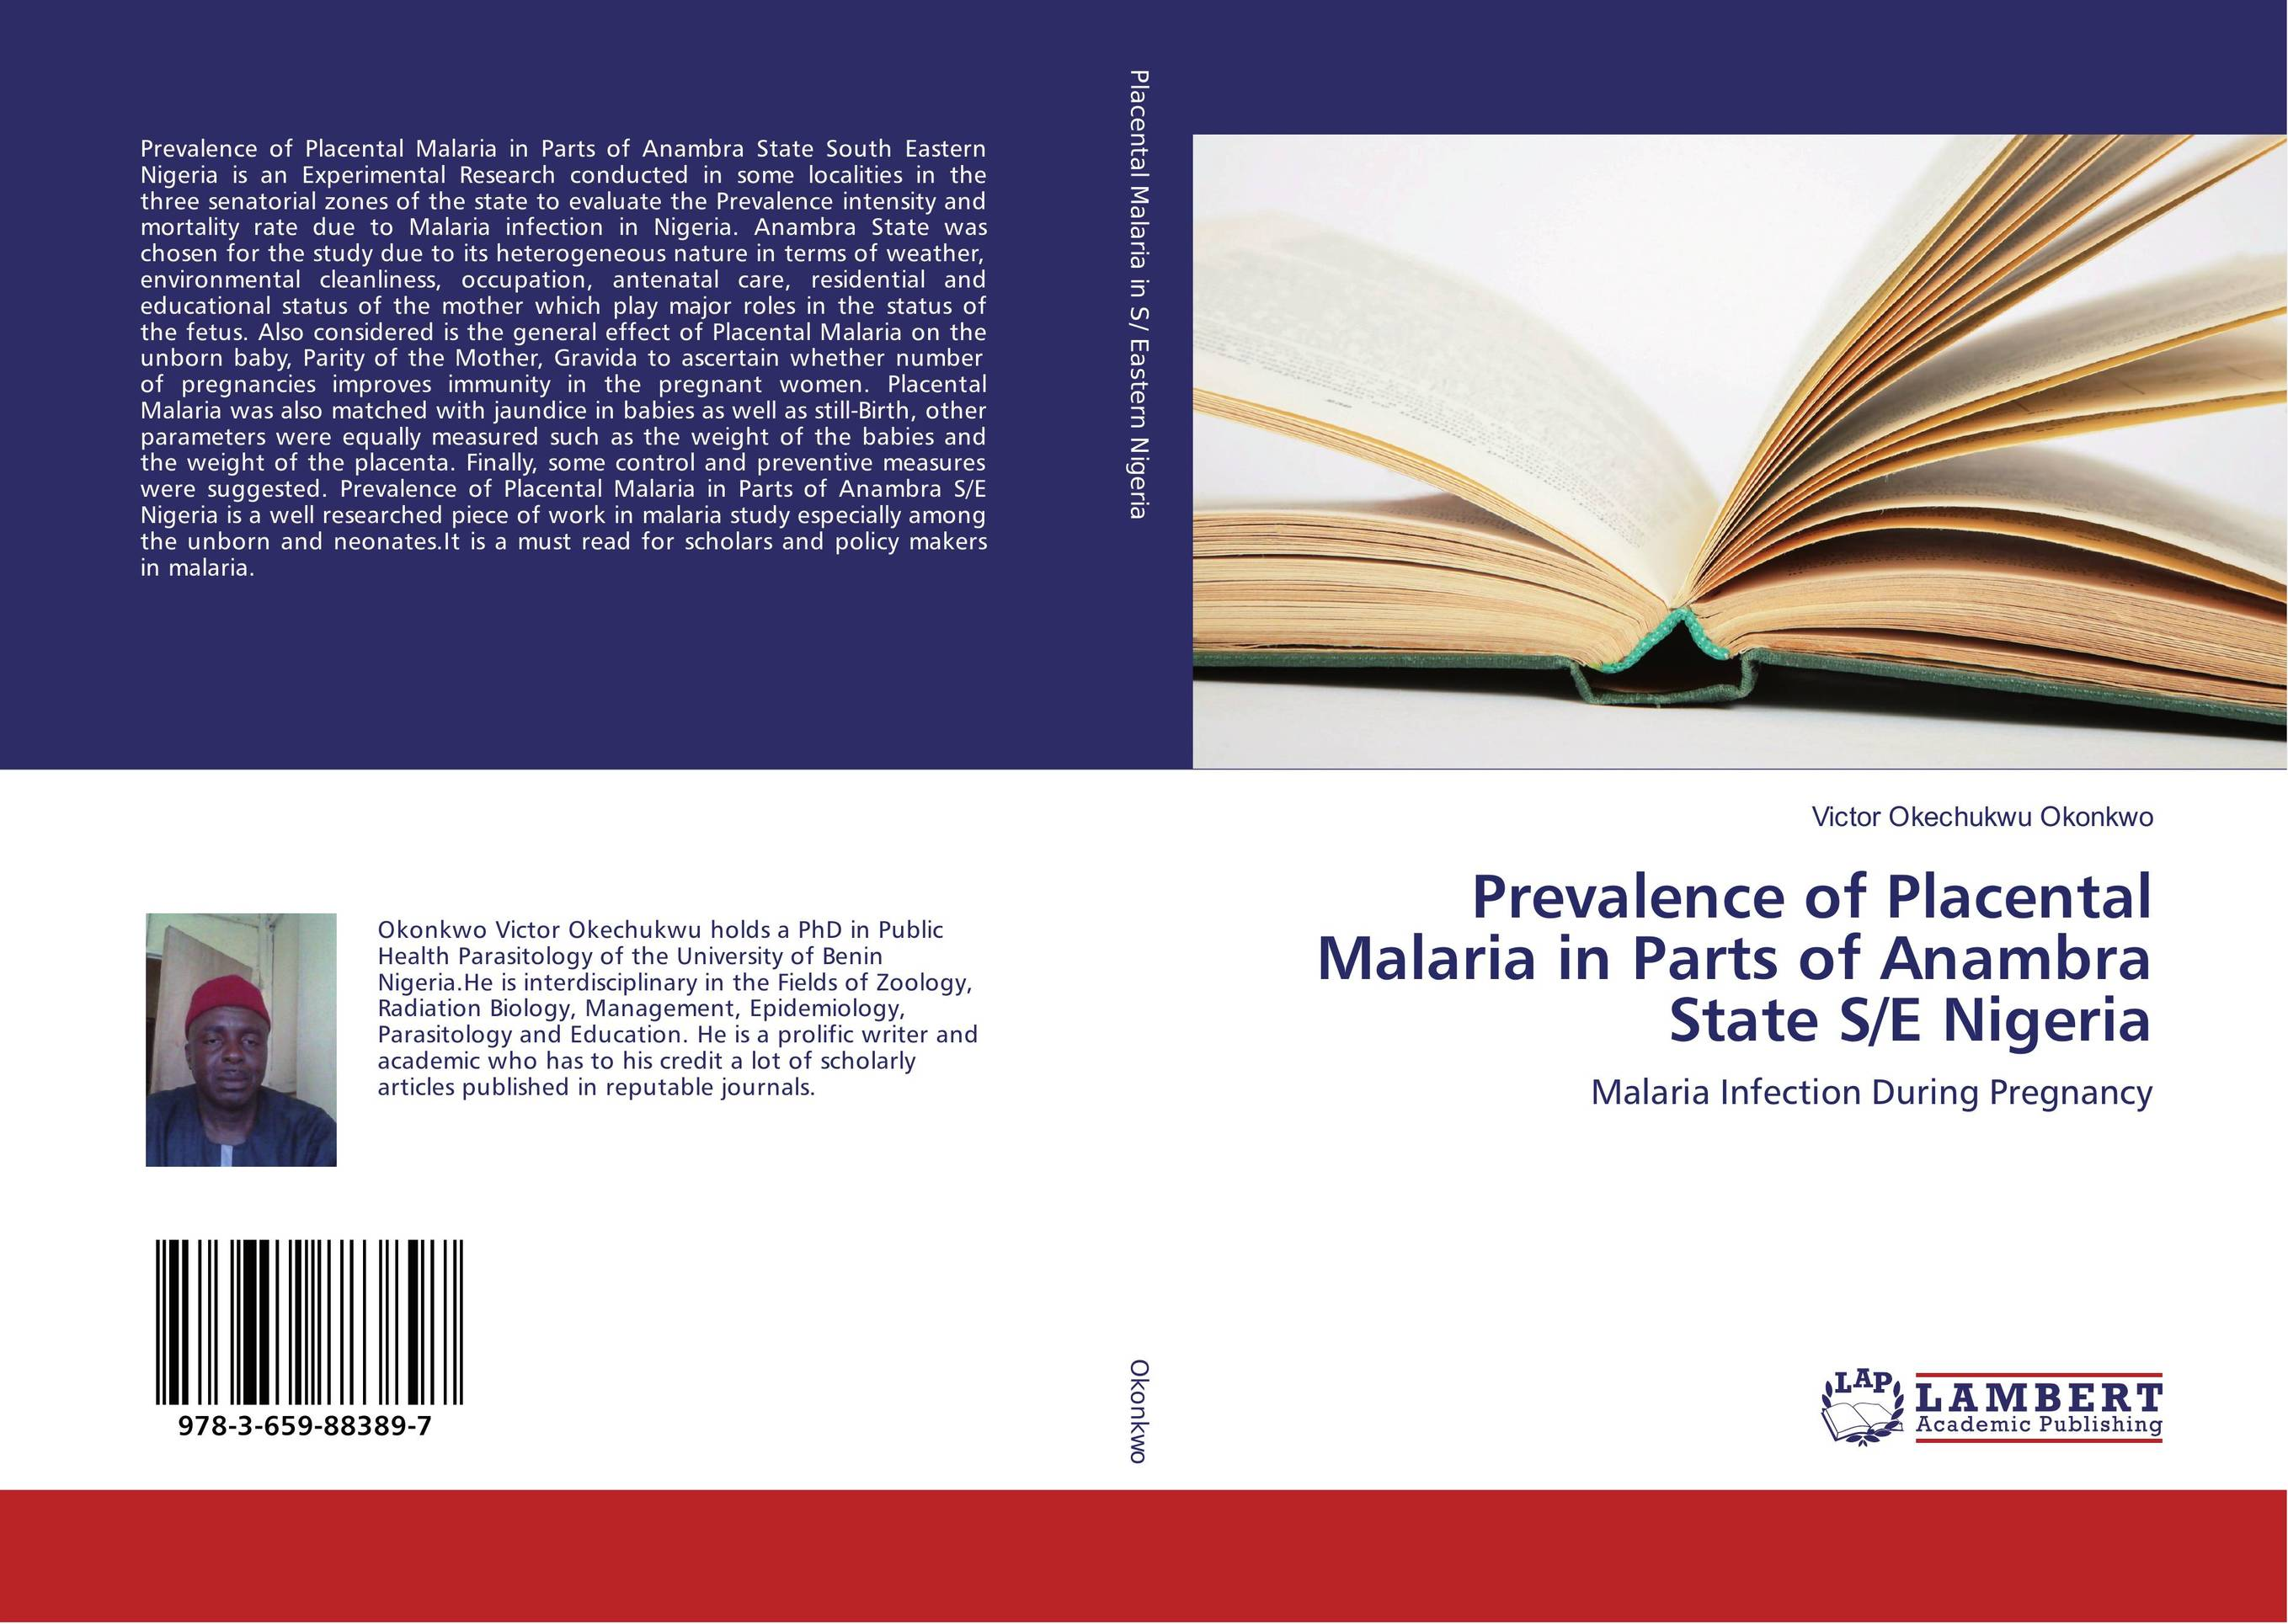 Prevalence of Placental Malaria in Parts of Anambra State S/E Nigeria